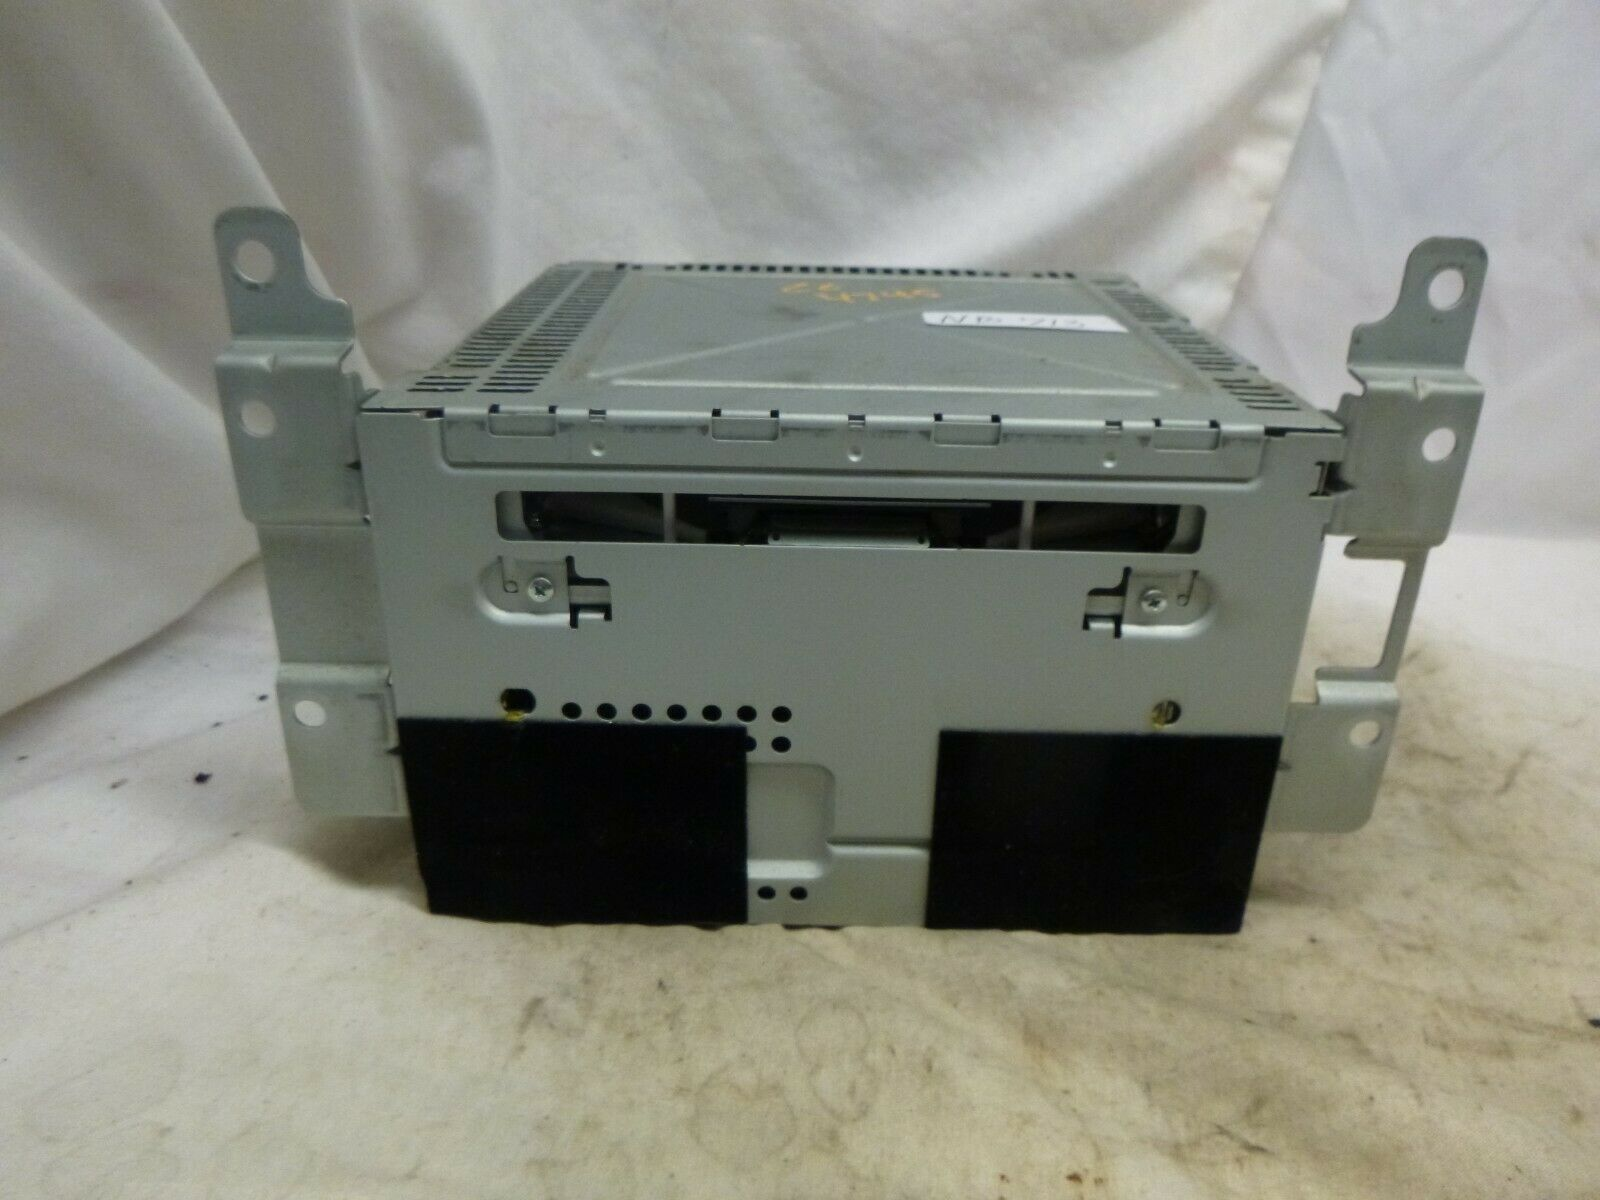 Primary image for 2009 2010 Ford Escape Mercury Mariner Radio Cd Mechanism 9L8T-19C157-BE Bulk 713